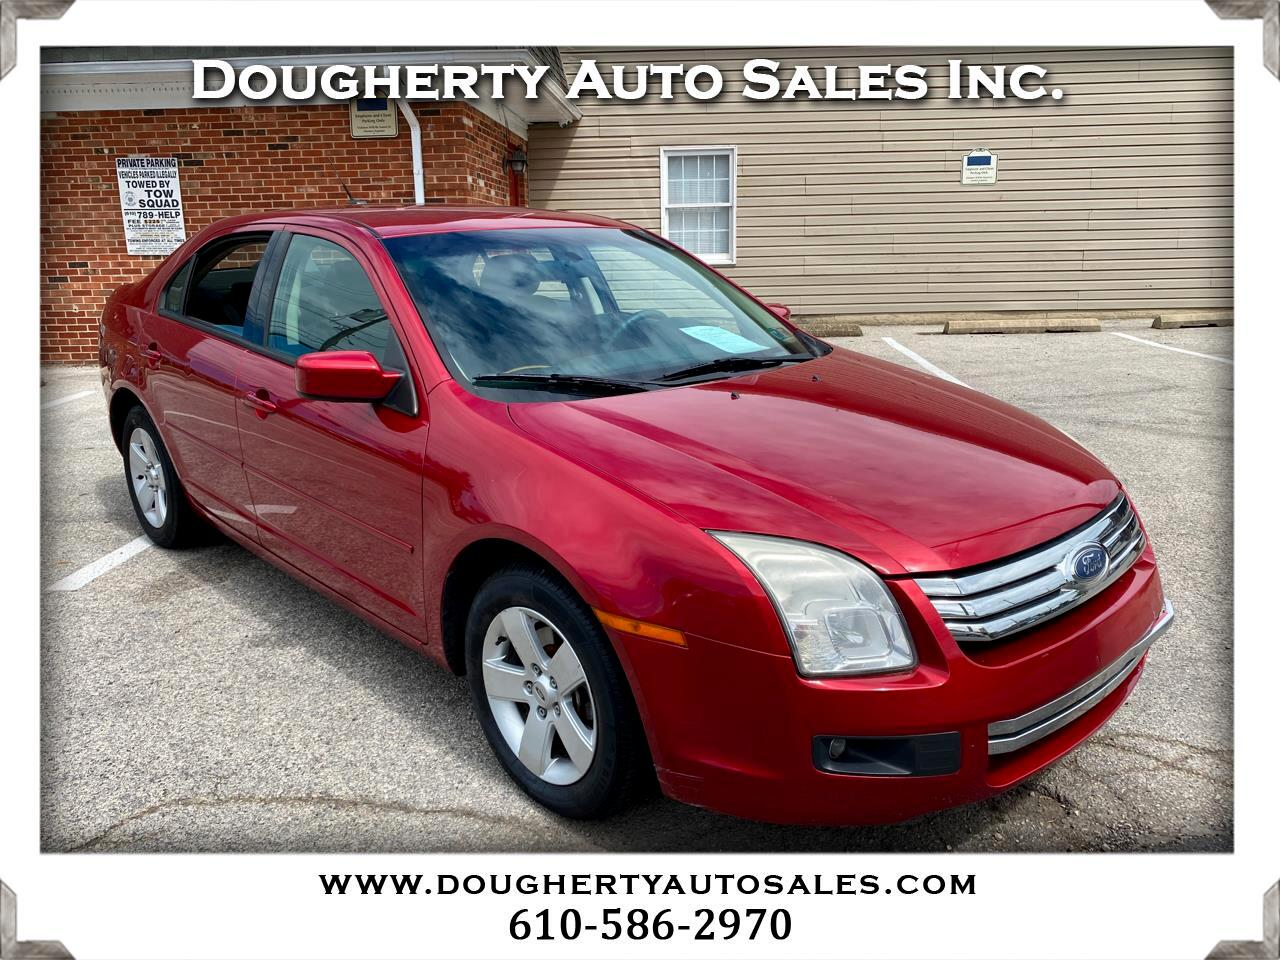 Ford Fusion 4dr Sdn I4 SE FWD 2007